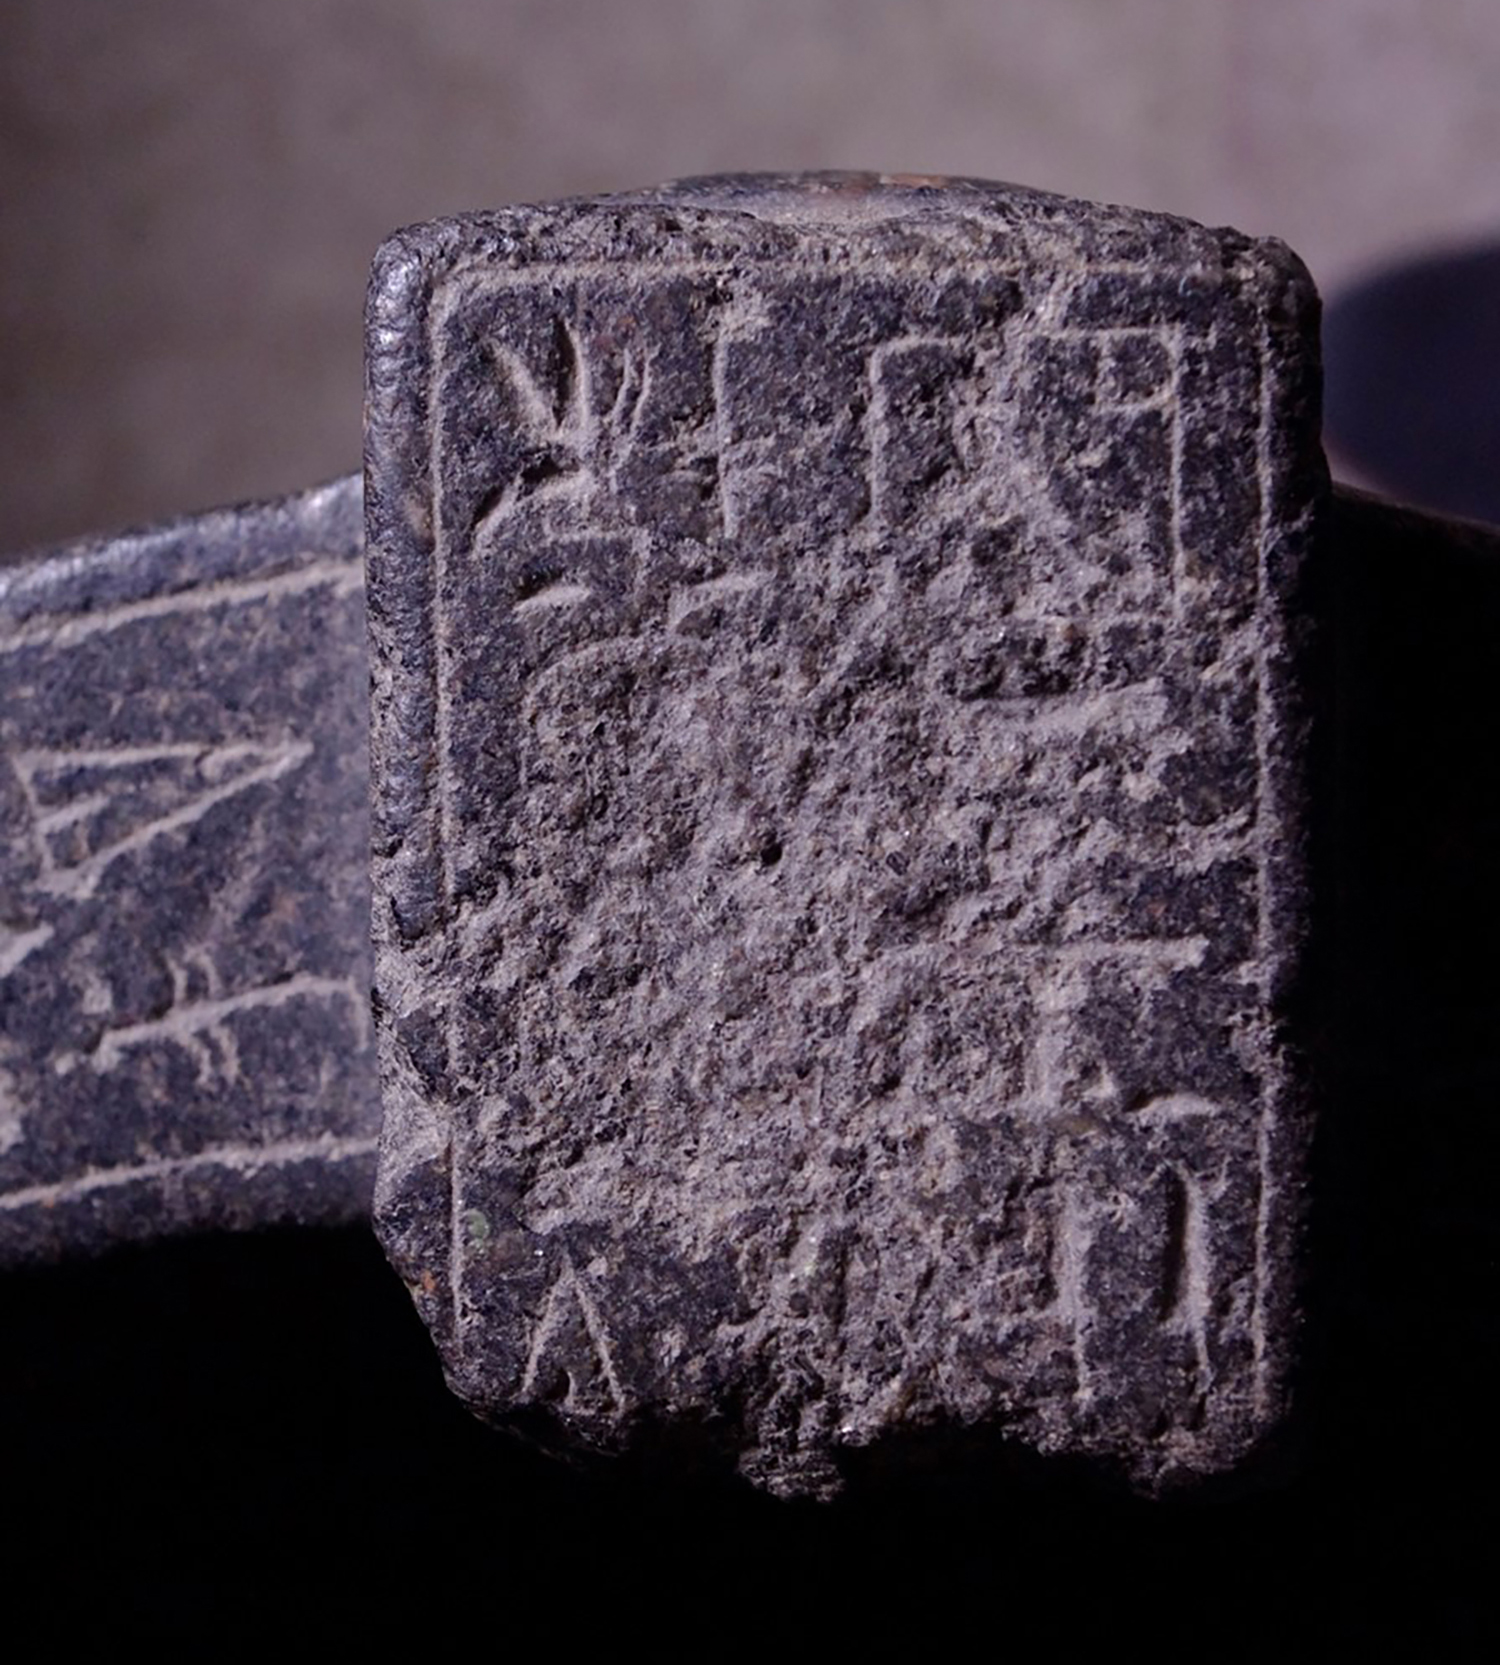 Figure 25: A view of the rectangular raised portion of the rim with a short hieroglyphic inscription. One can see the areas of damage near the oval-shaped cartouche on the left.